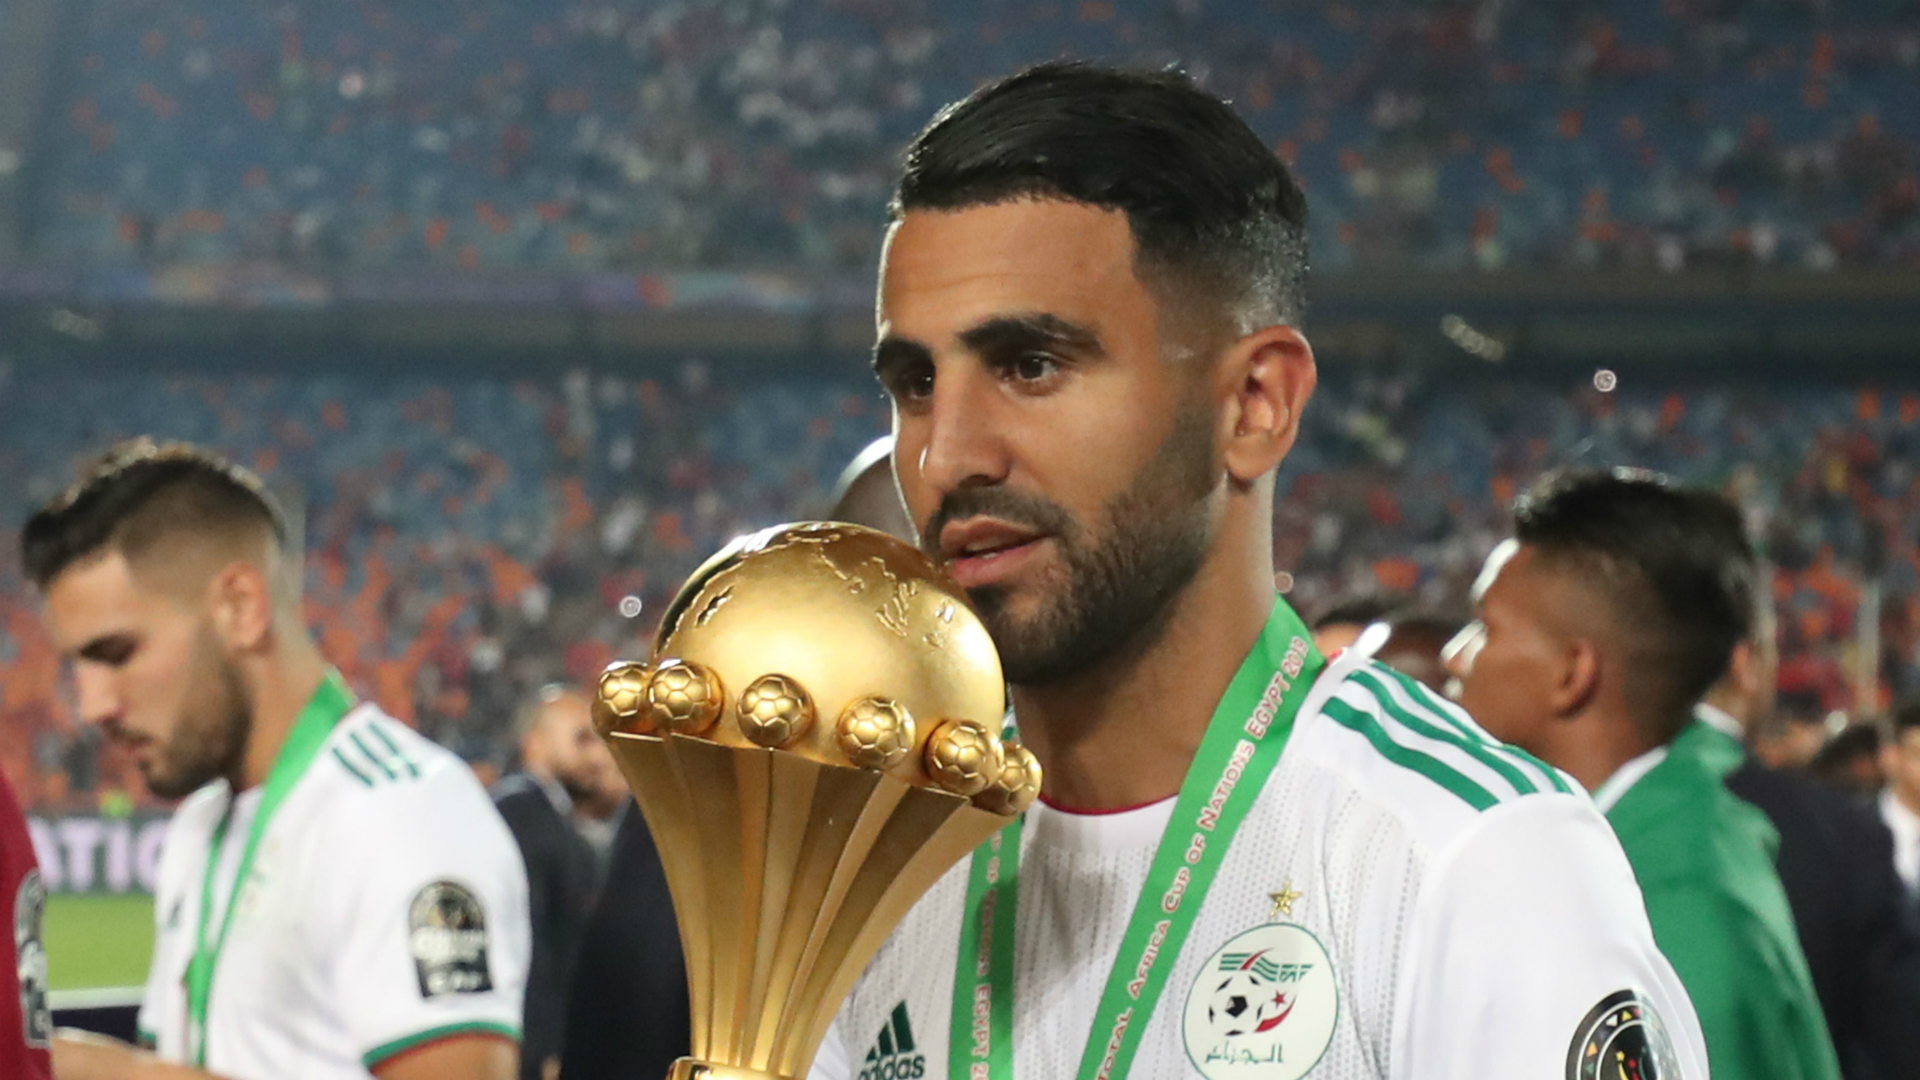 Algeria coach Belmadi praises Mahrez's role at Afcon 2019